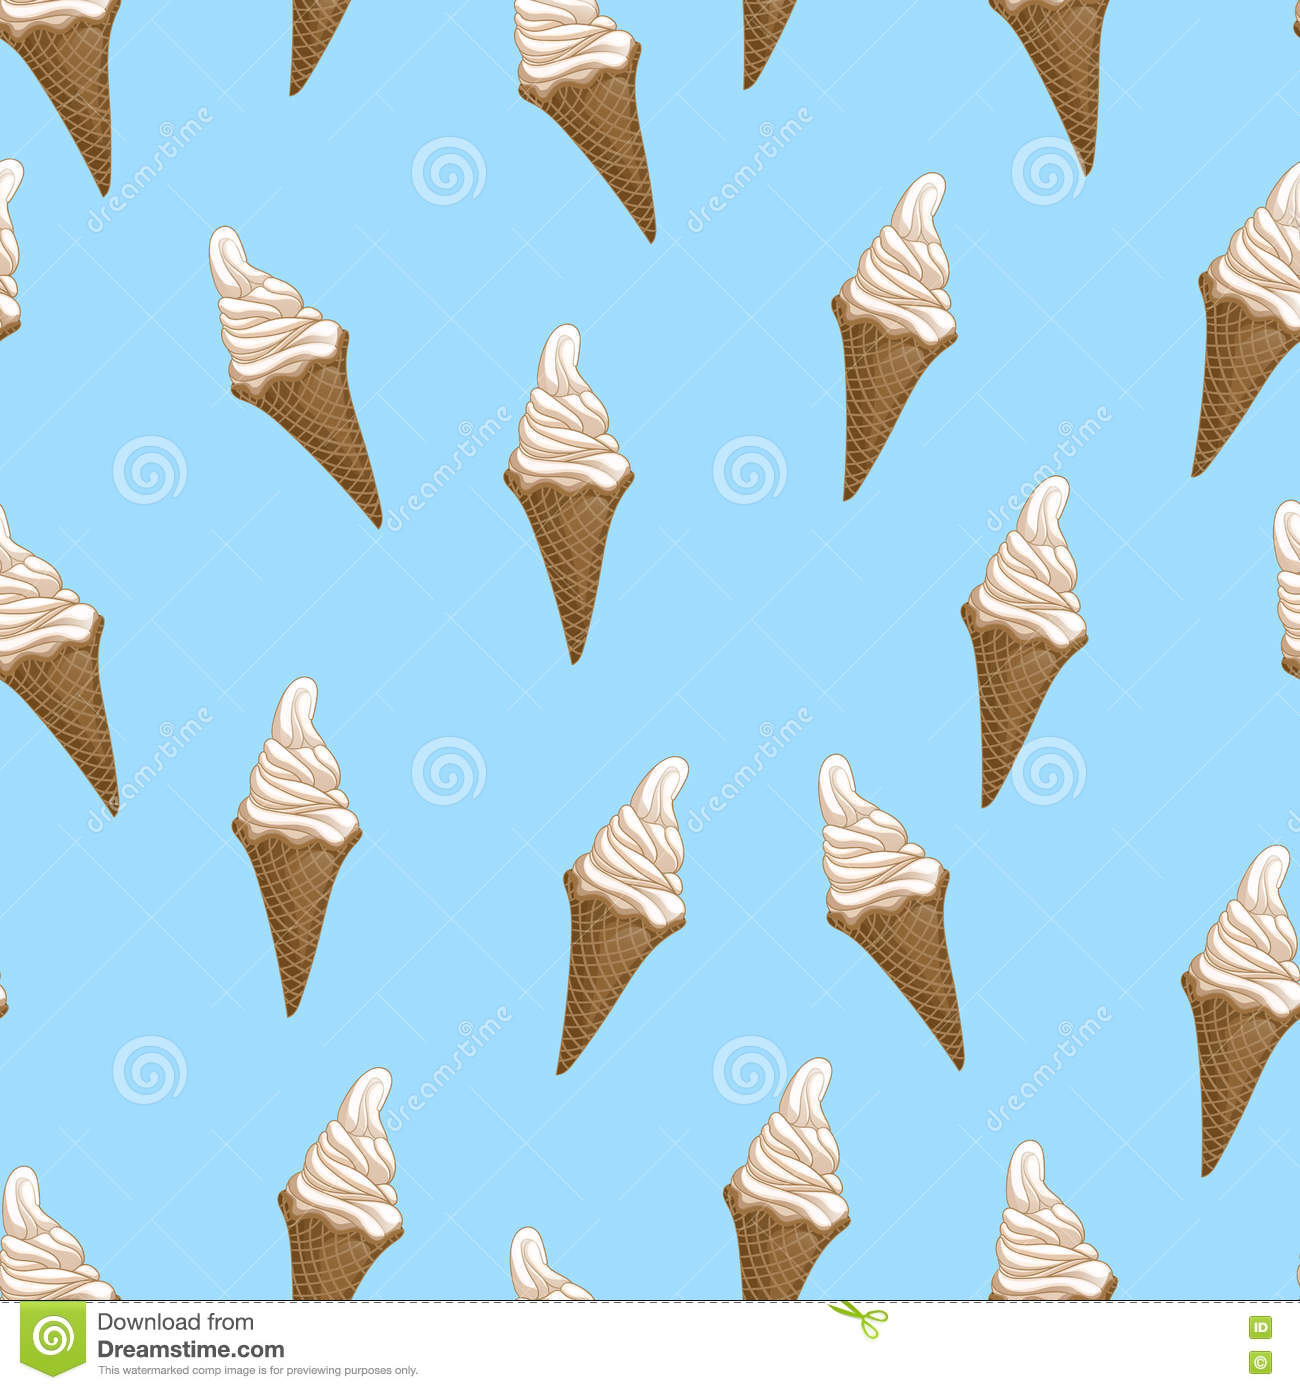 Ice Cream Cones Seamless Pattern Background Stock Vector: Ice Cream Waffle Cones Seamless Pattern. Stylized Vector